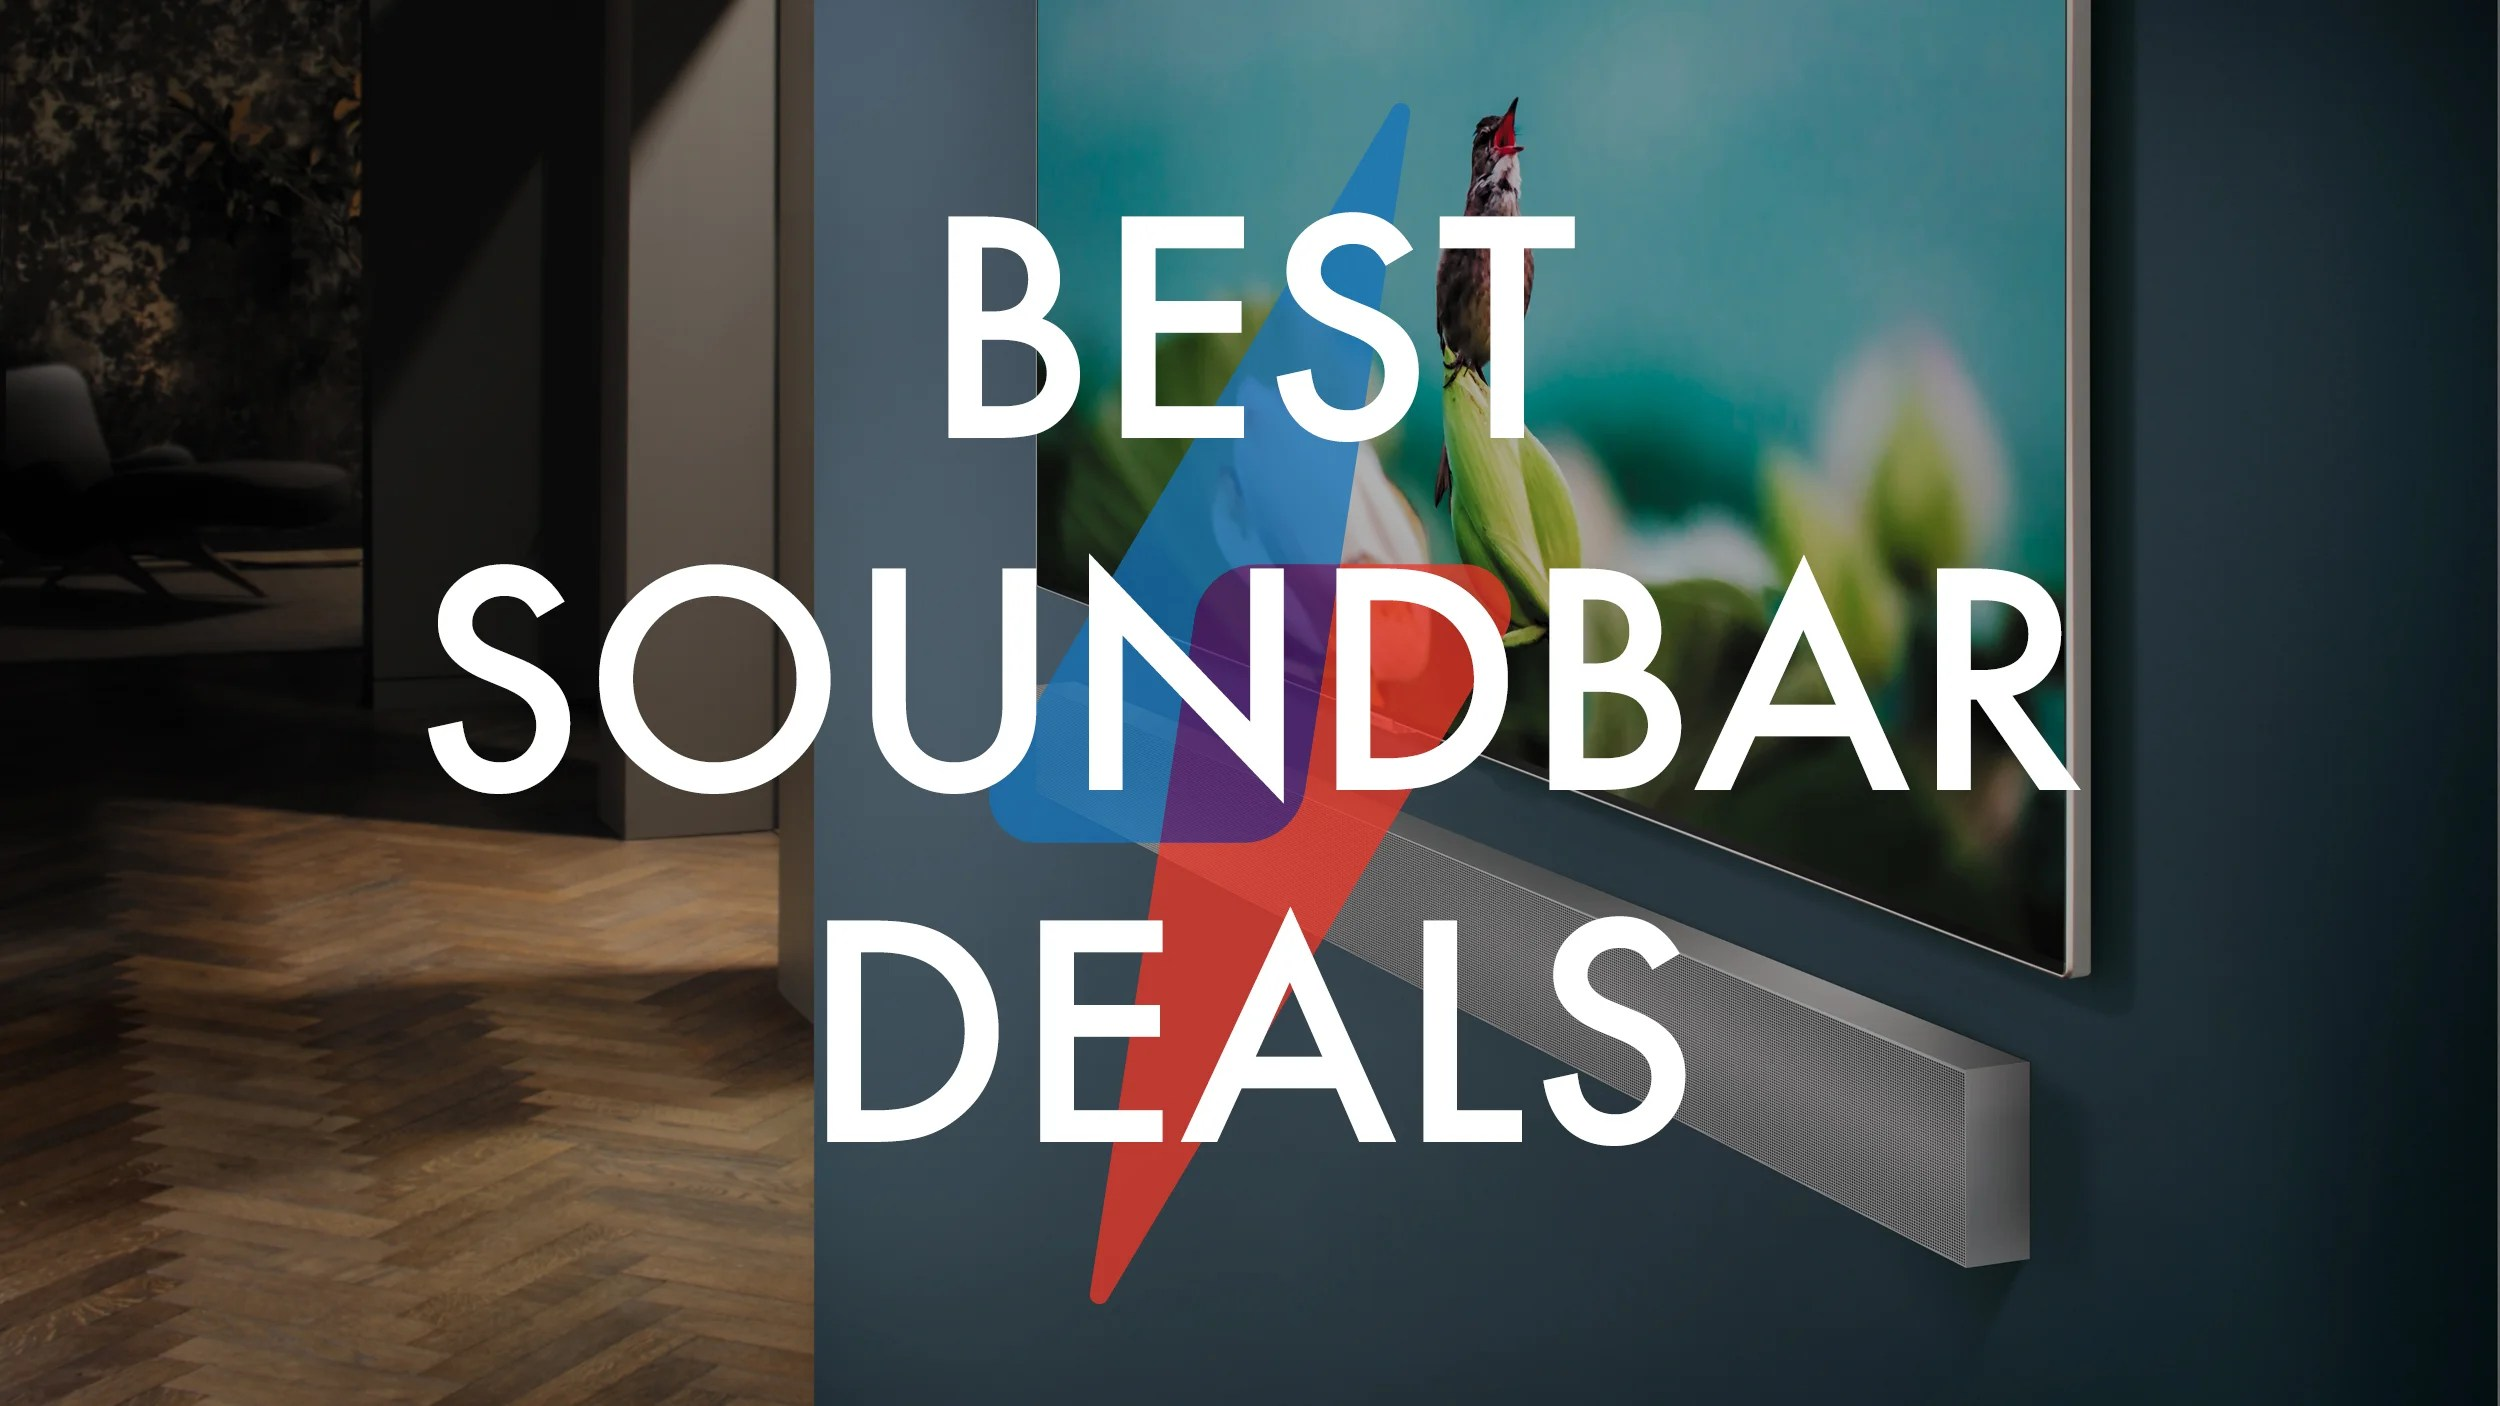 Beste Deals The Best Cheap Soundbar Deals In The Uk For April 2019 Trusted